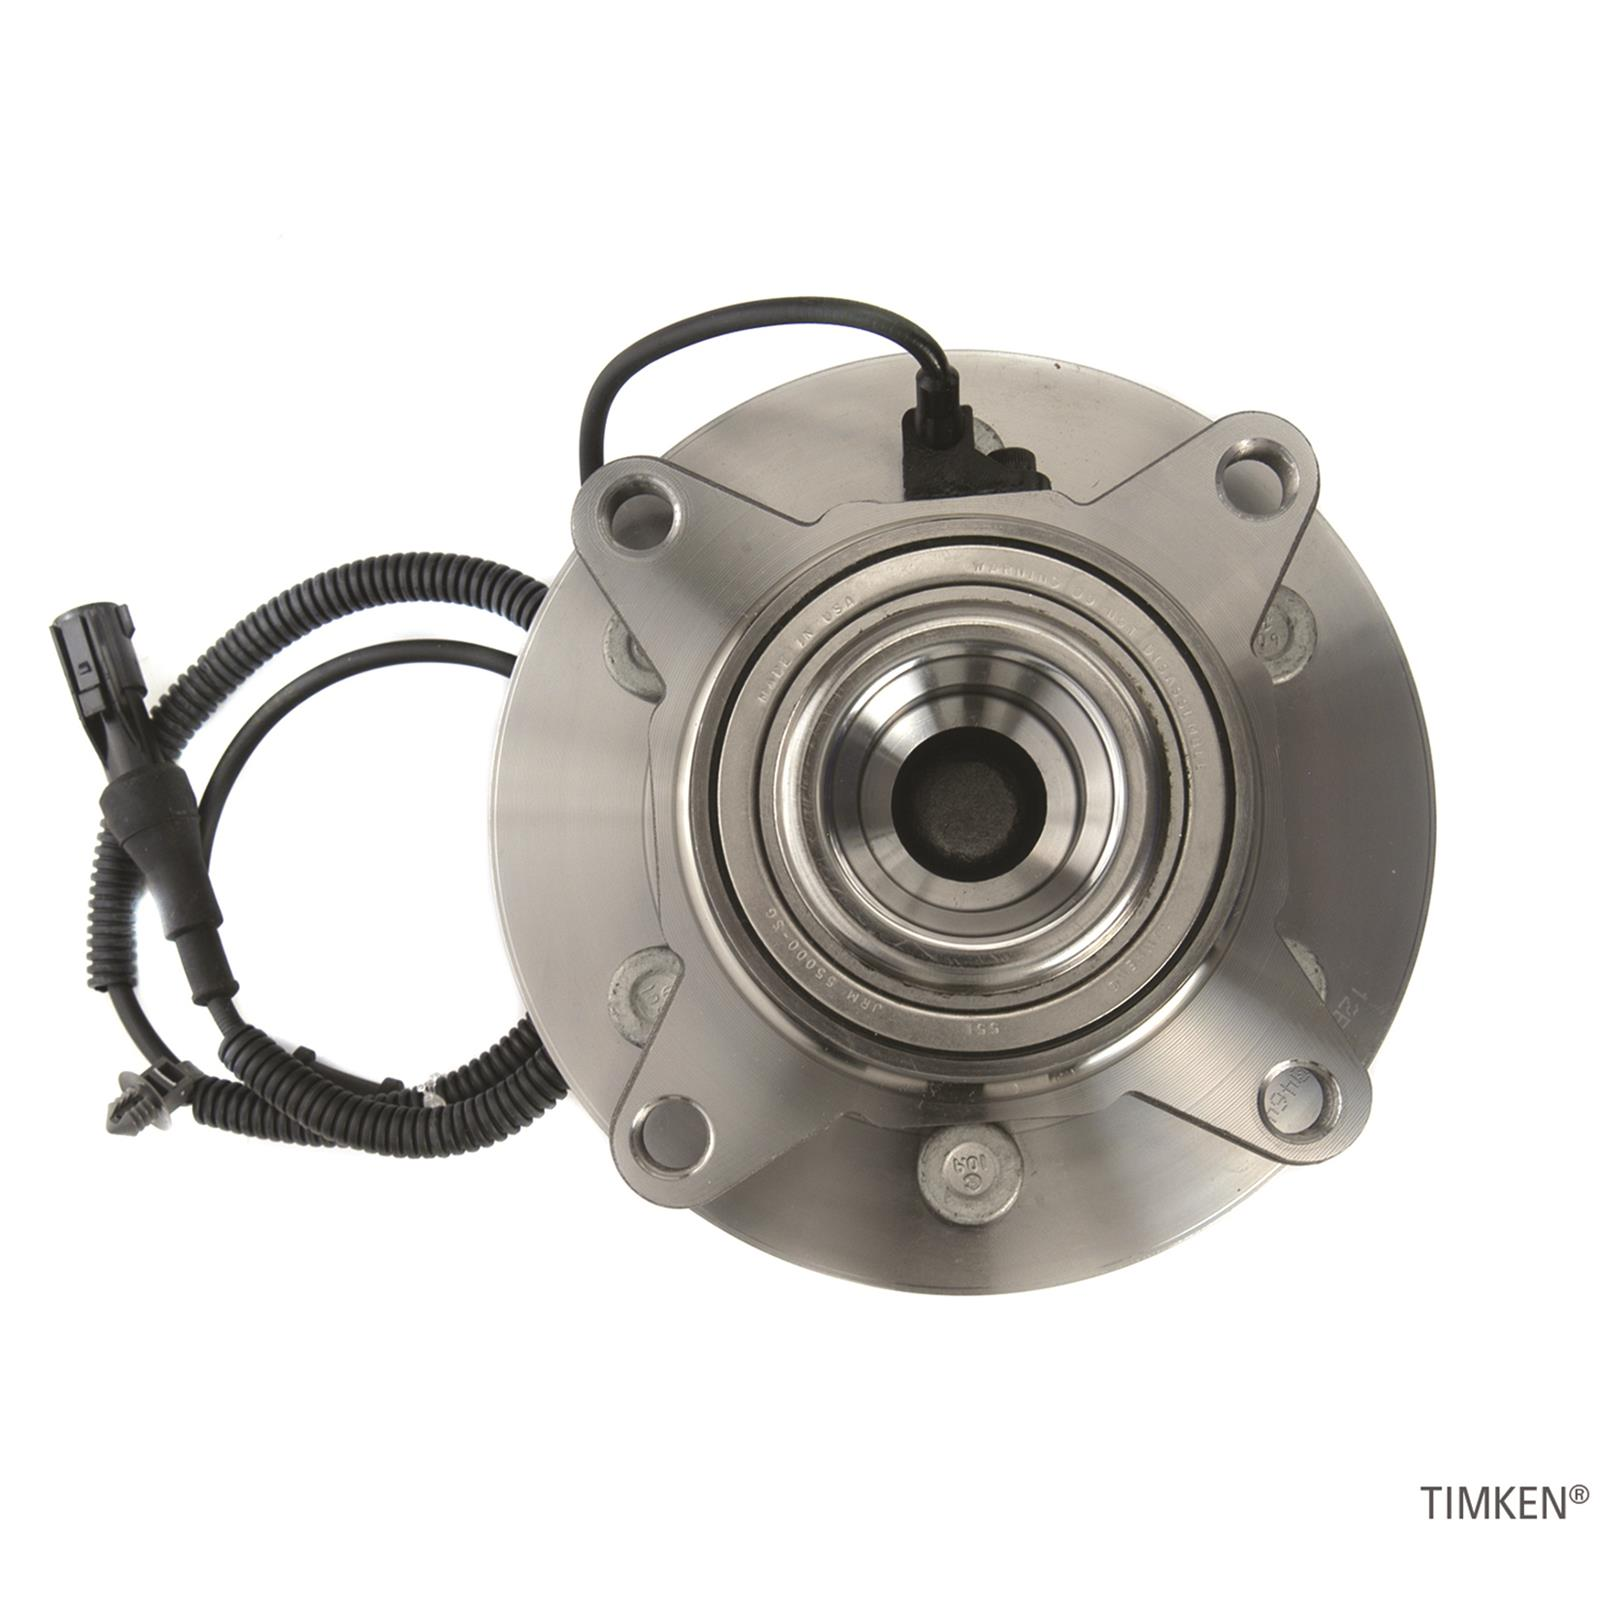 FORD EXPEDITION Timken Wheel Bearing and Hub Assemblies SP550211